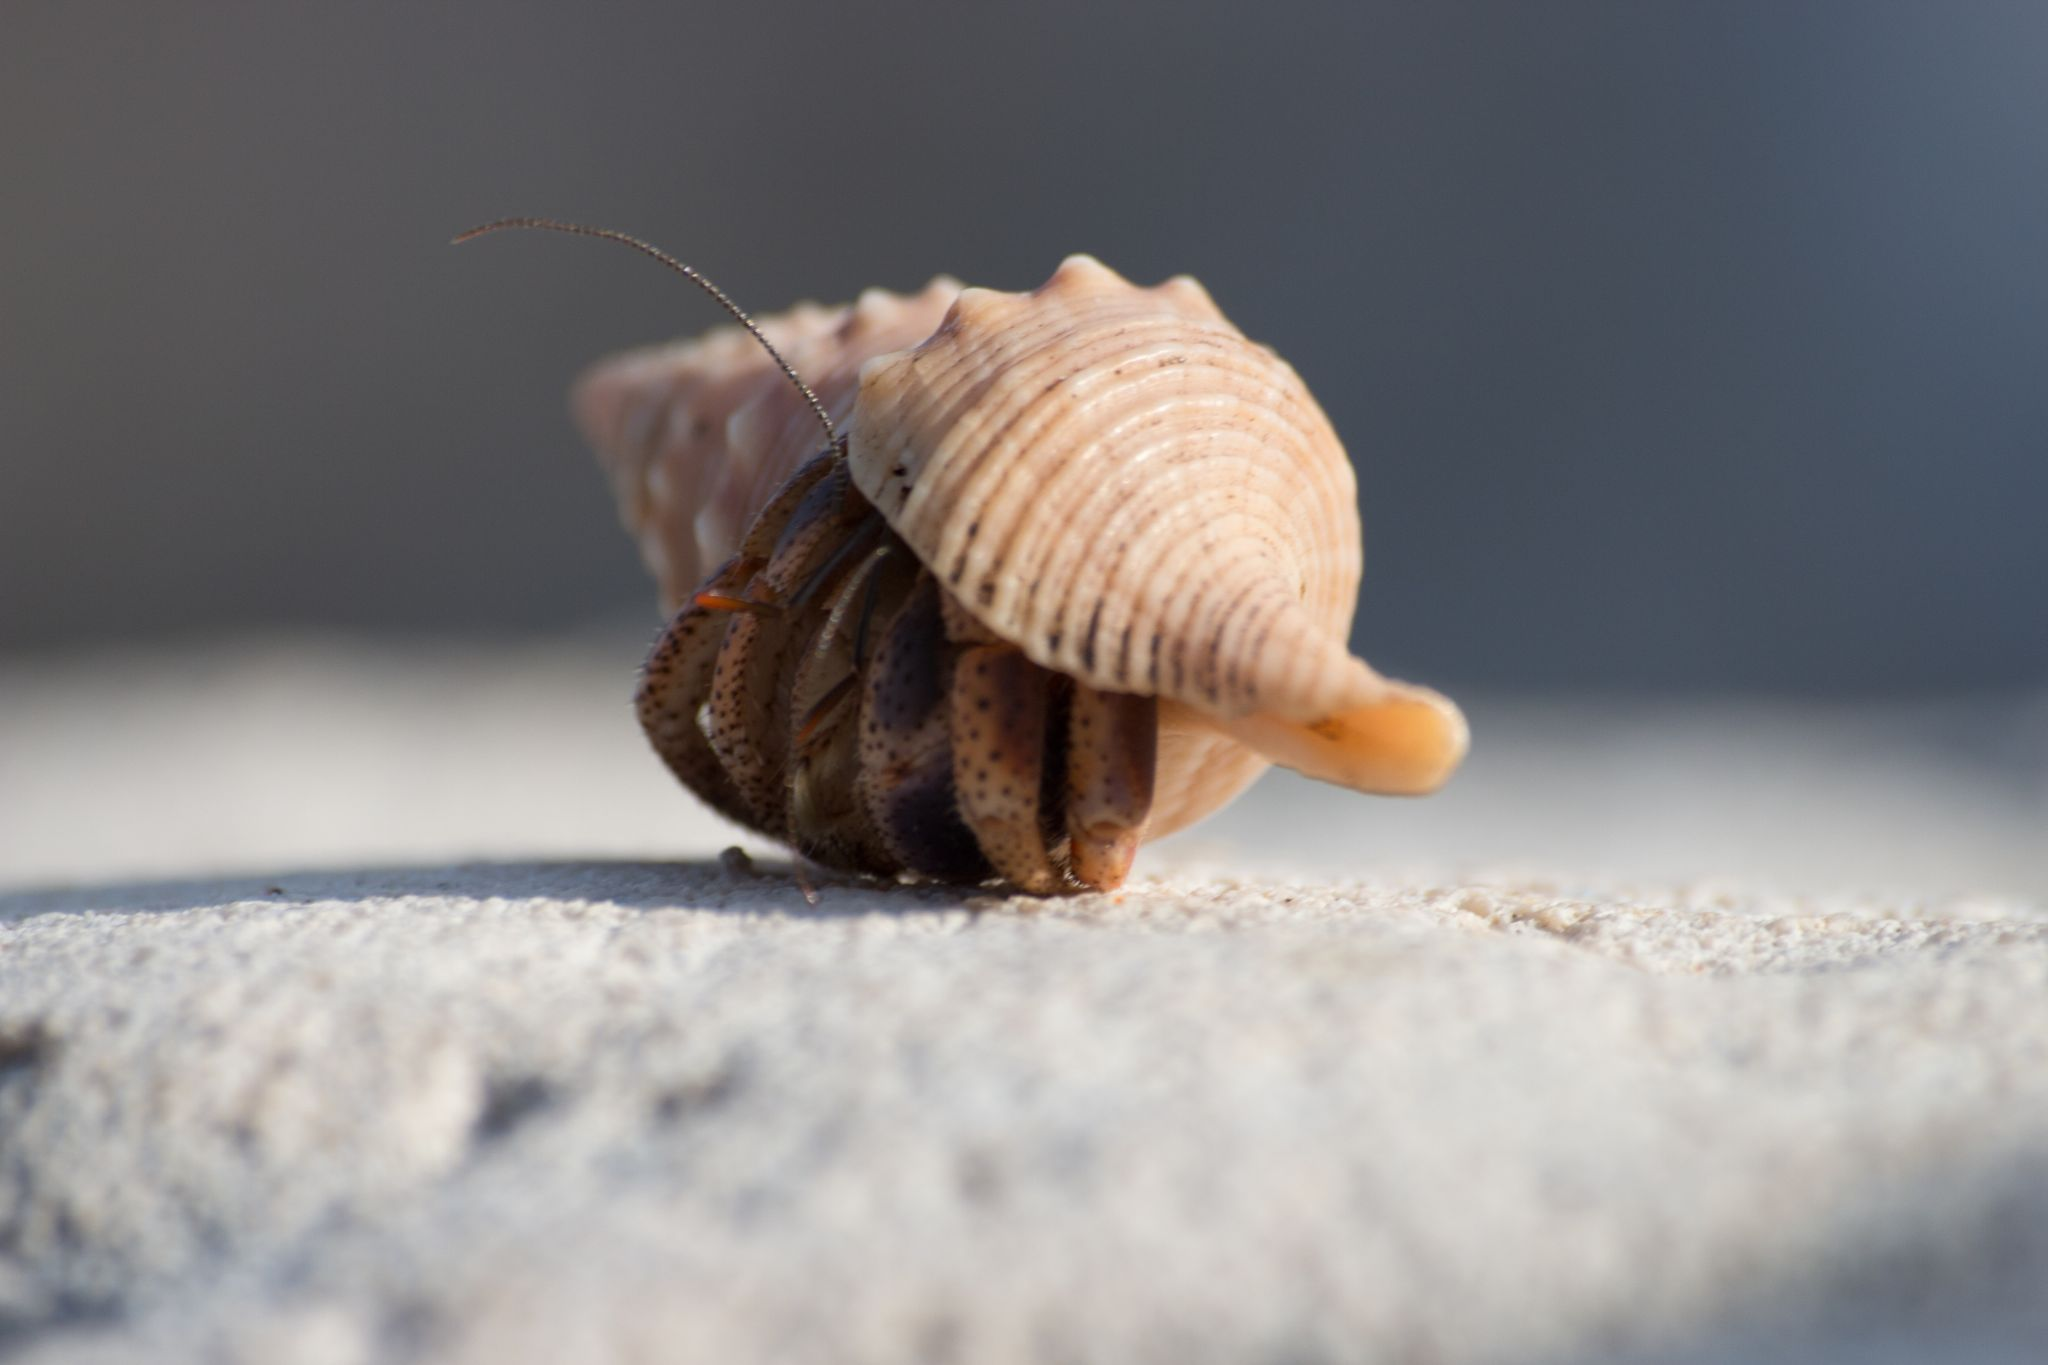 INTRUDER IN THE SNAIL by Harry Smit